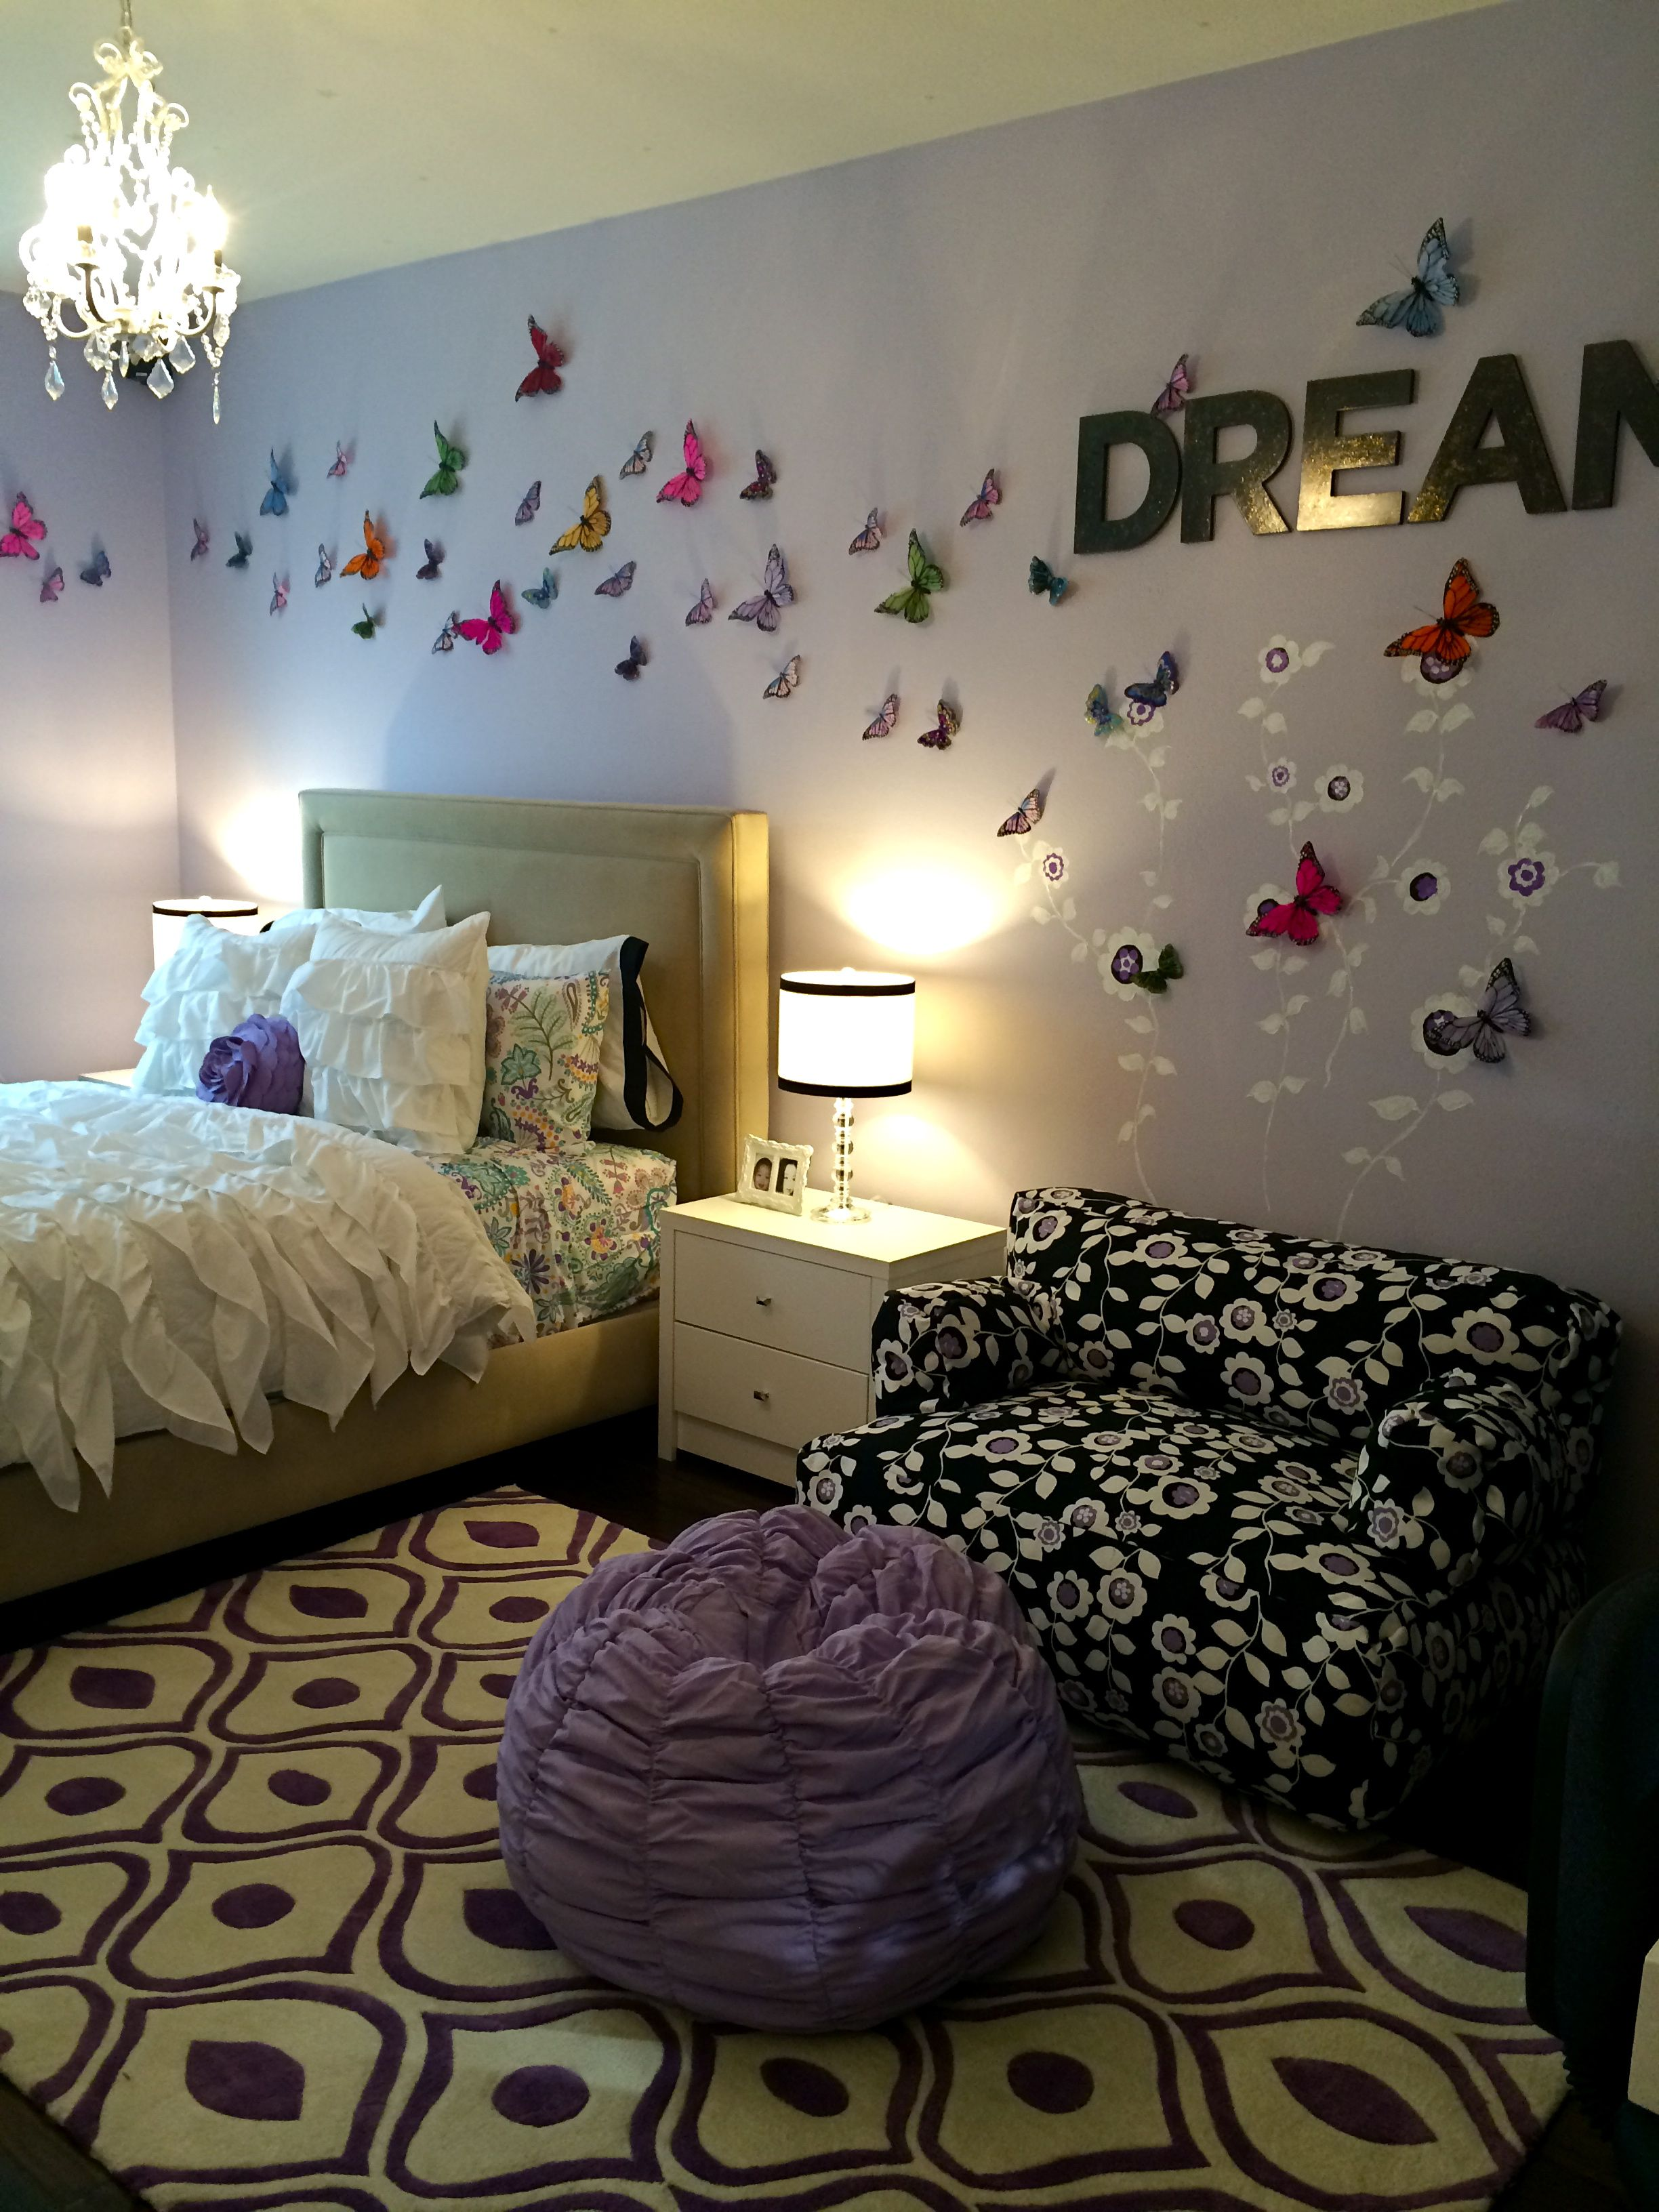 A 10 year old girls dream bedroom contact for Make your dream bedroom